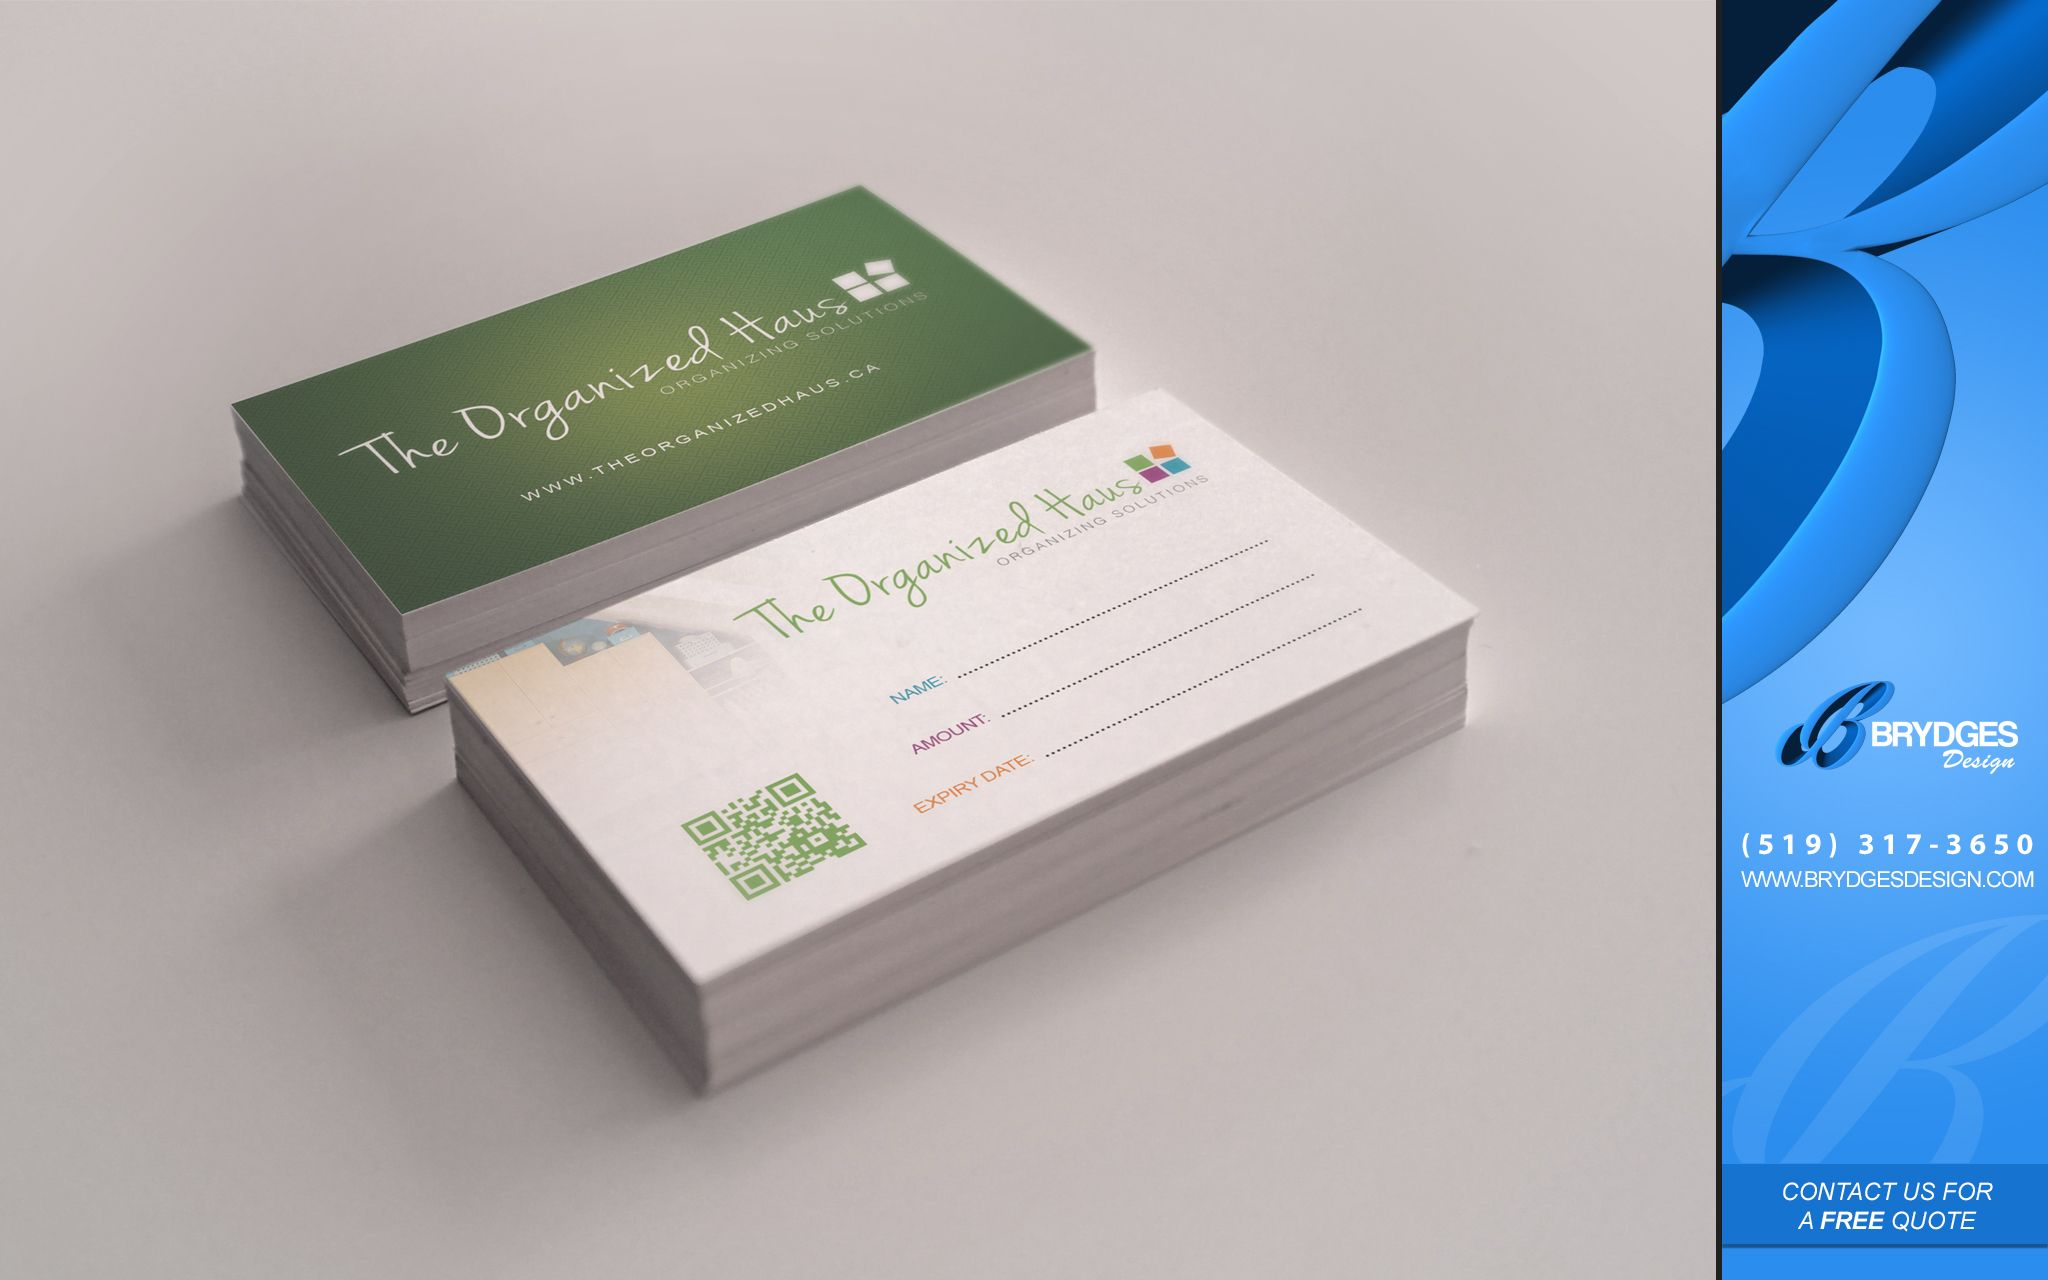 Business card printing in london httplondon business cards the organized haus gift cardsbusiness cards london ontario brydges design reheart Choice Image